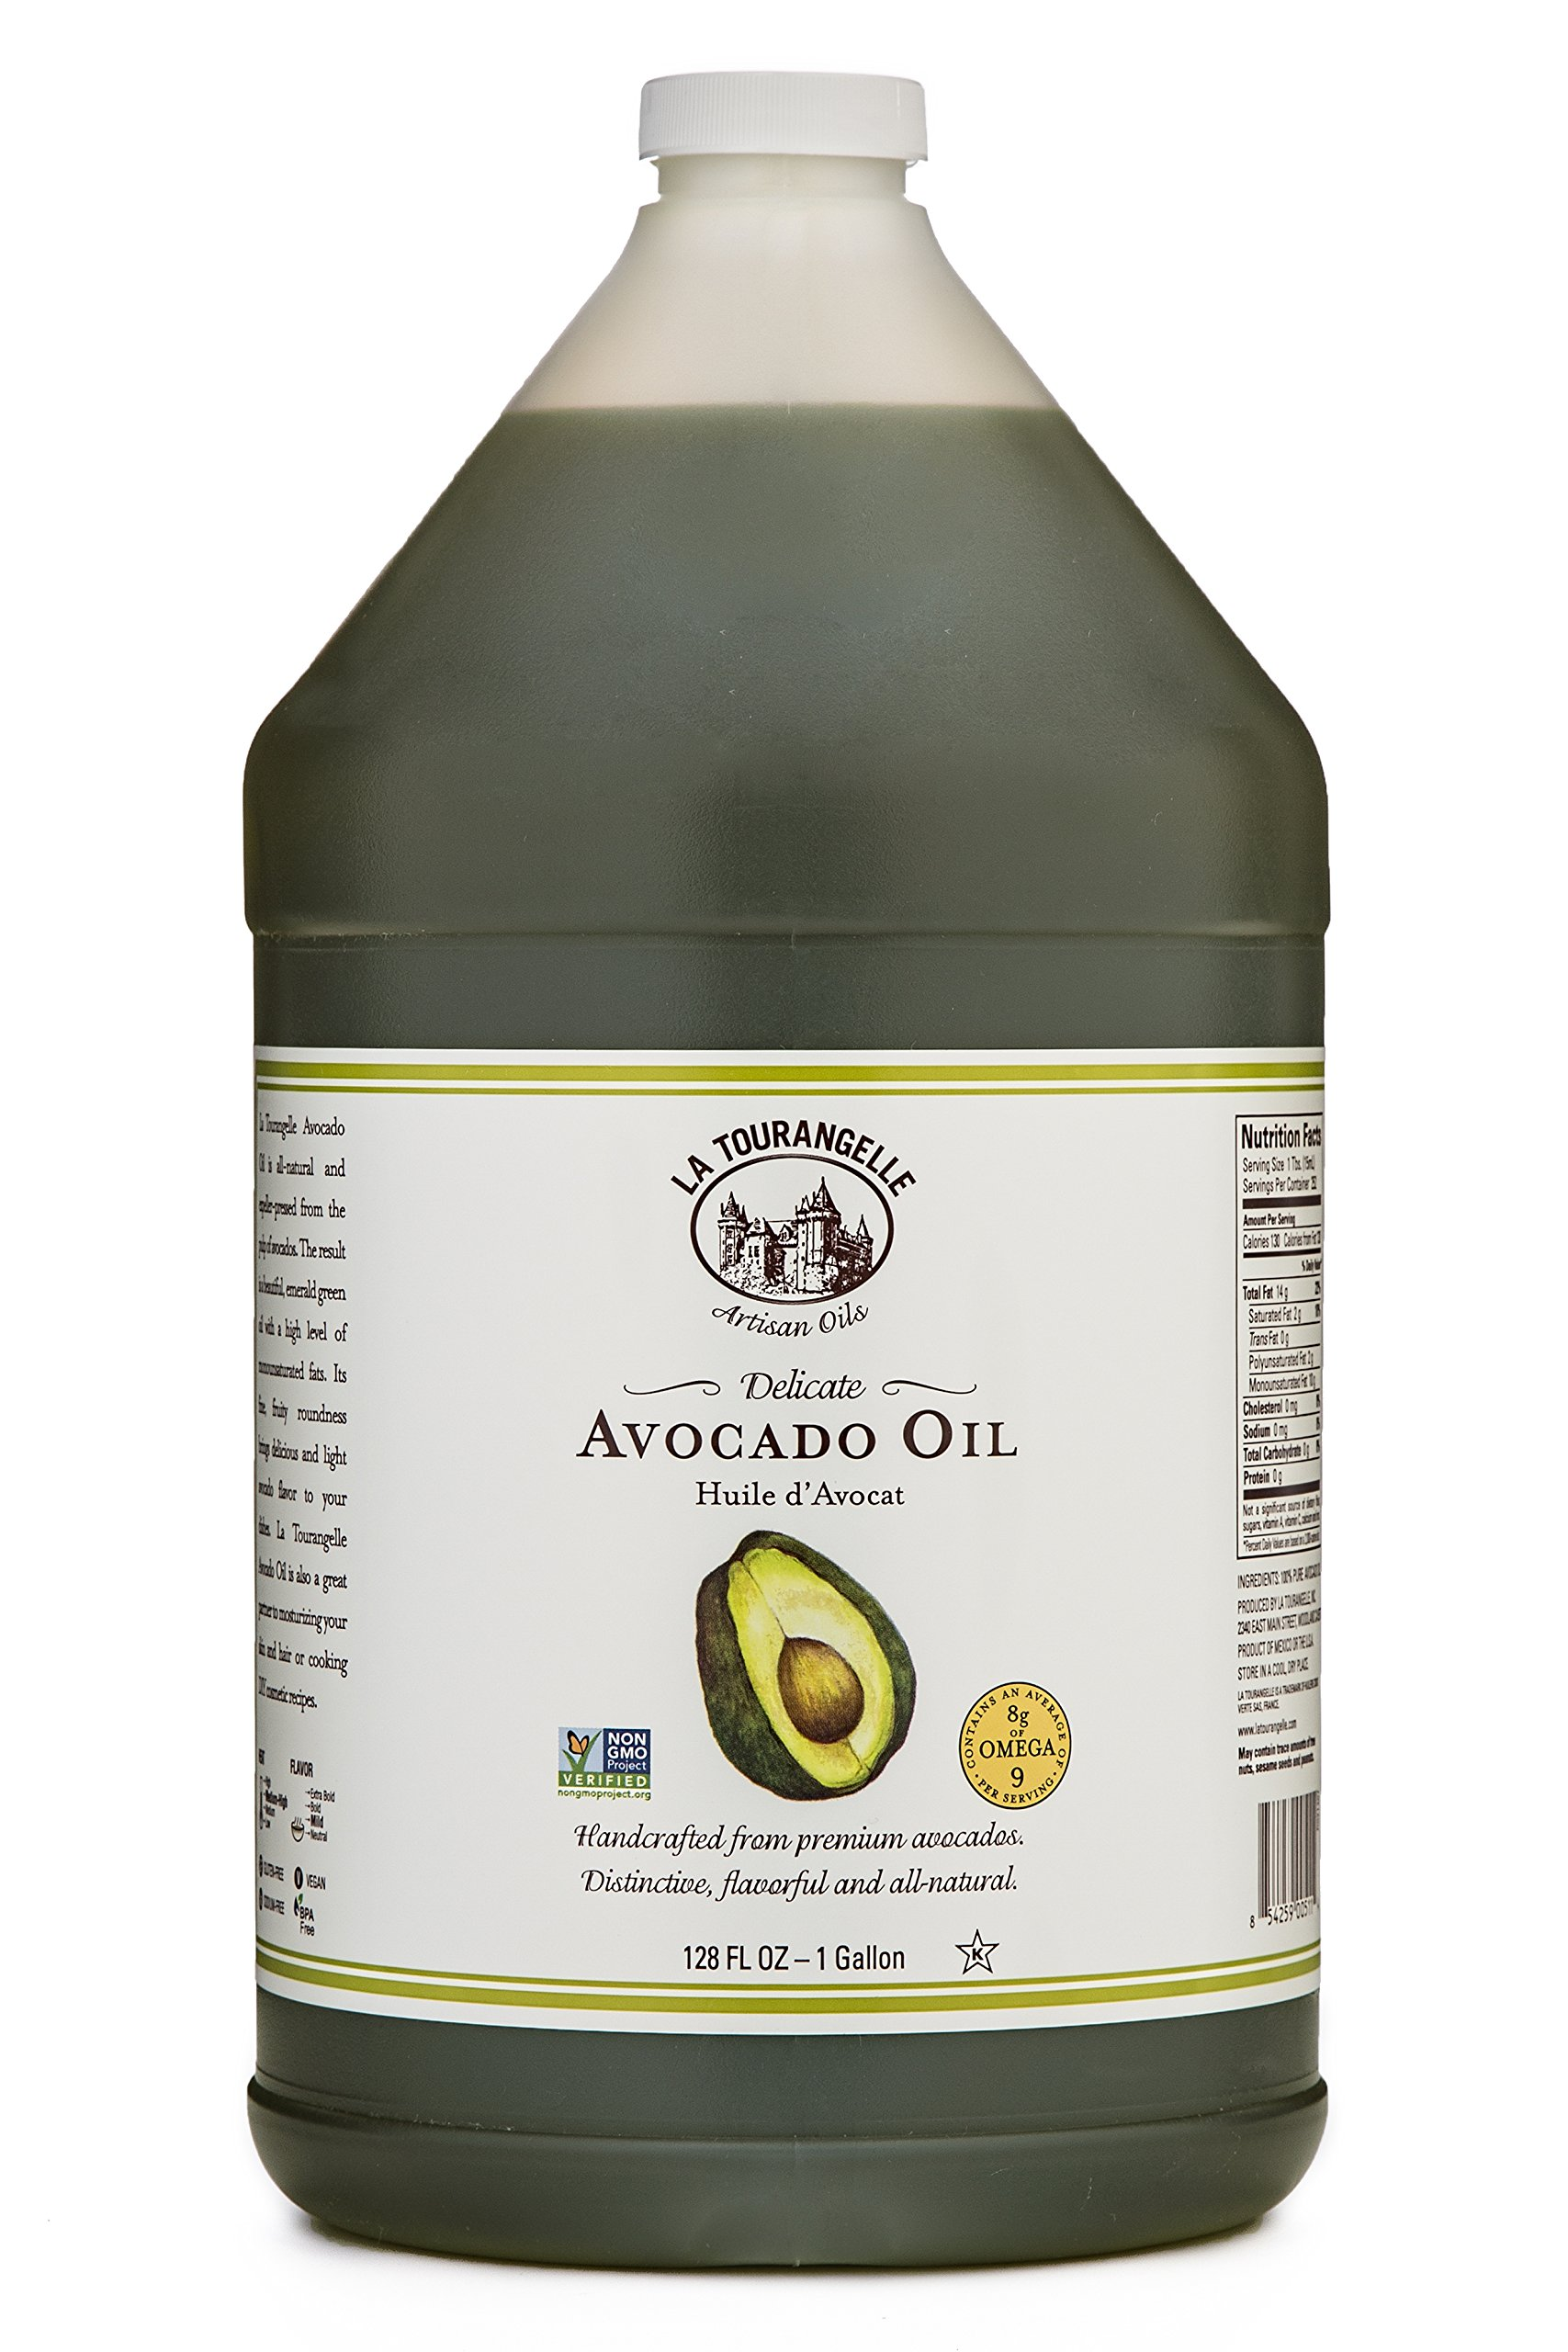 La Tourangelle Avocado Oil 128 Fl. Oz., All-Natural, Artisanal, Great for Salads, Fruit, Fish or Vegetables, Great Buttery Flavor by La Tourangelle (Image #1)